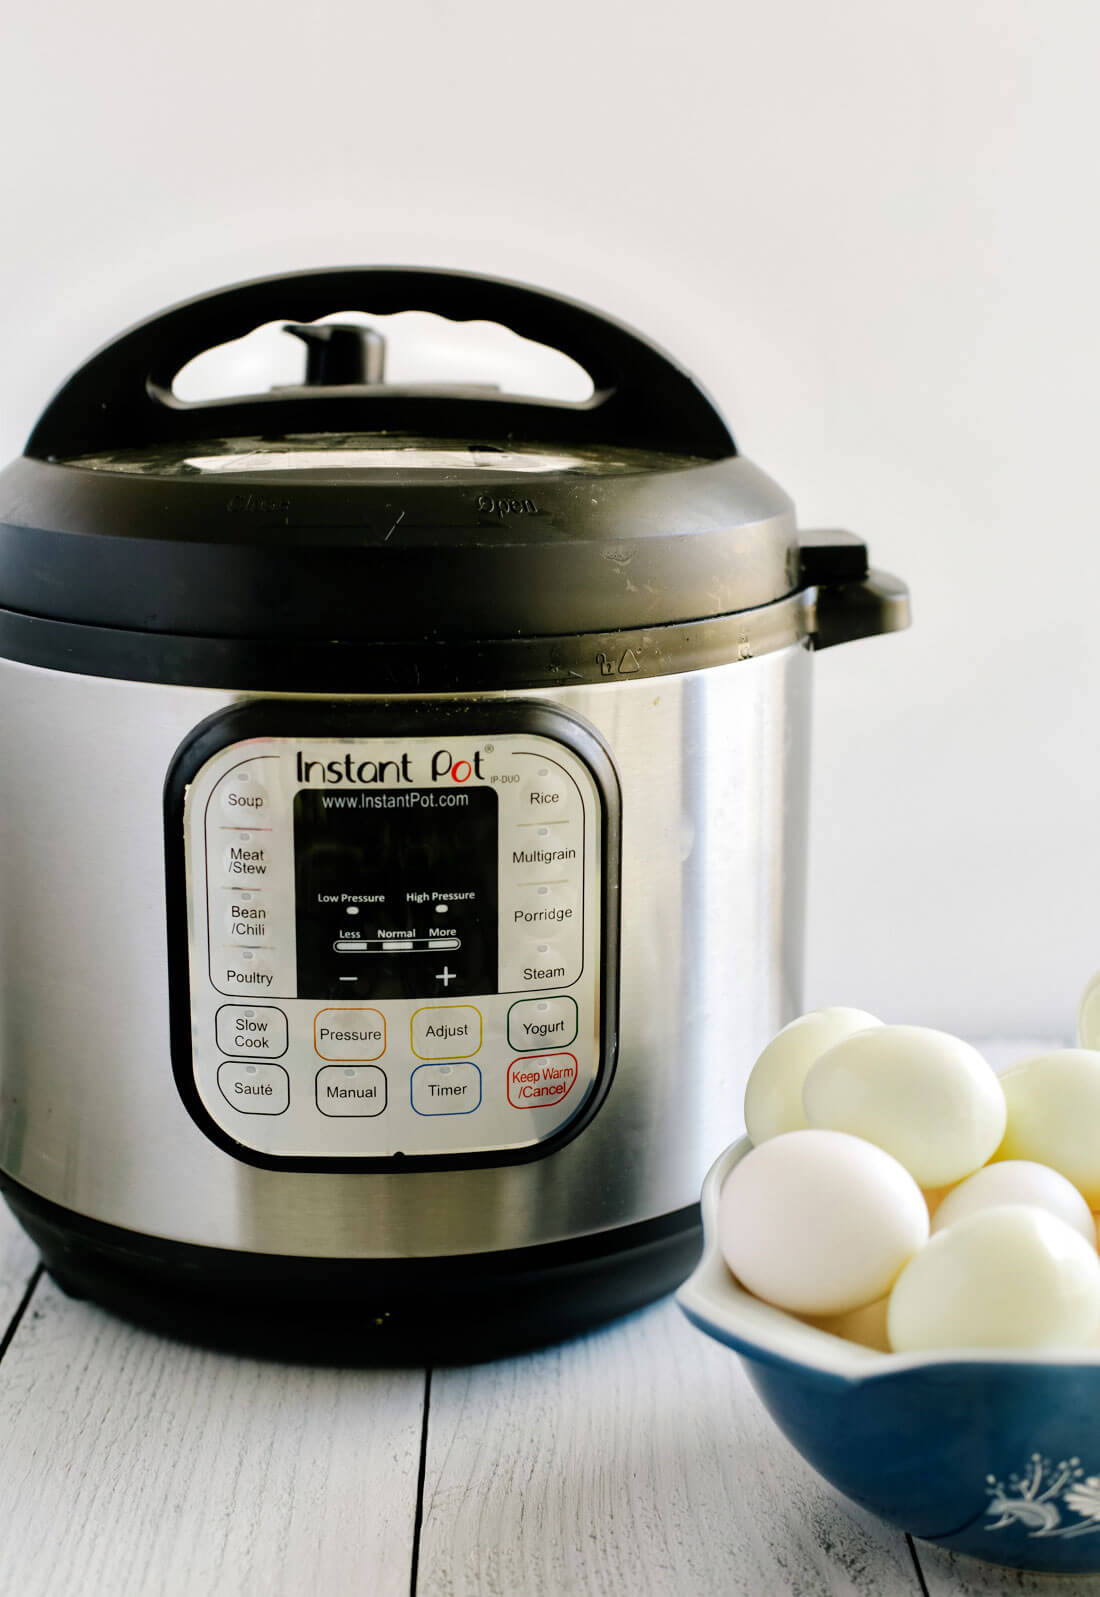 Using the Instant Pot - how to make hard boiled eggs